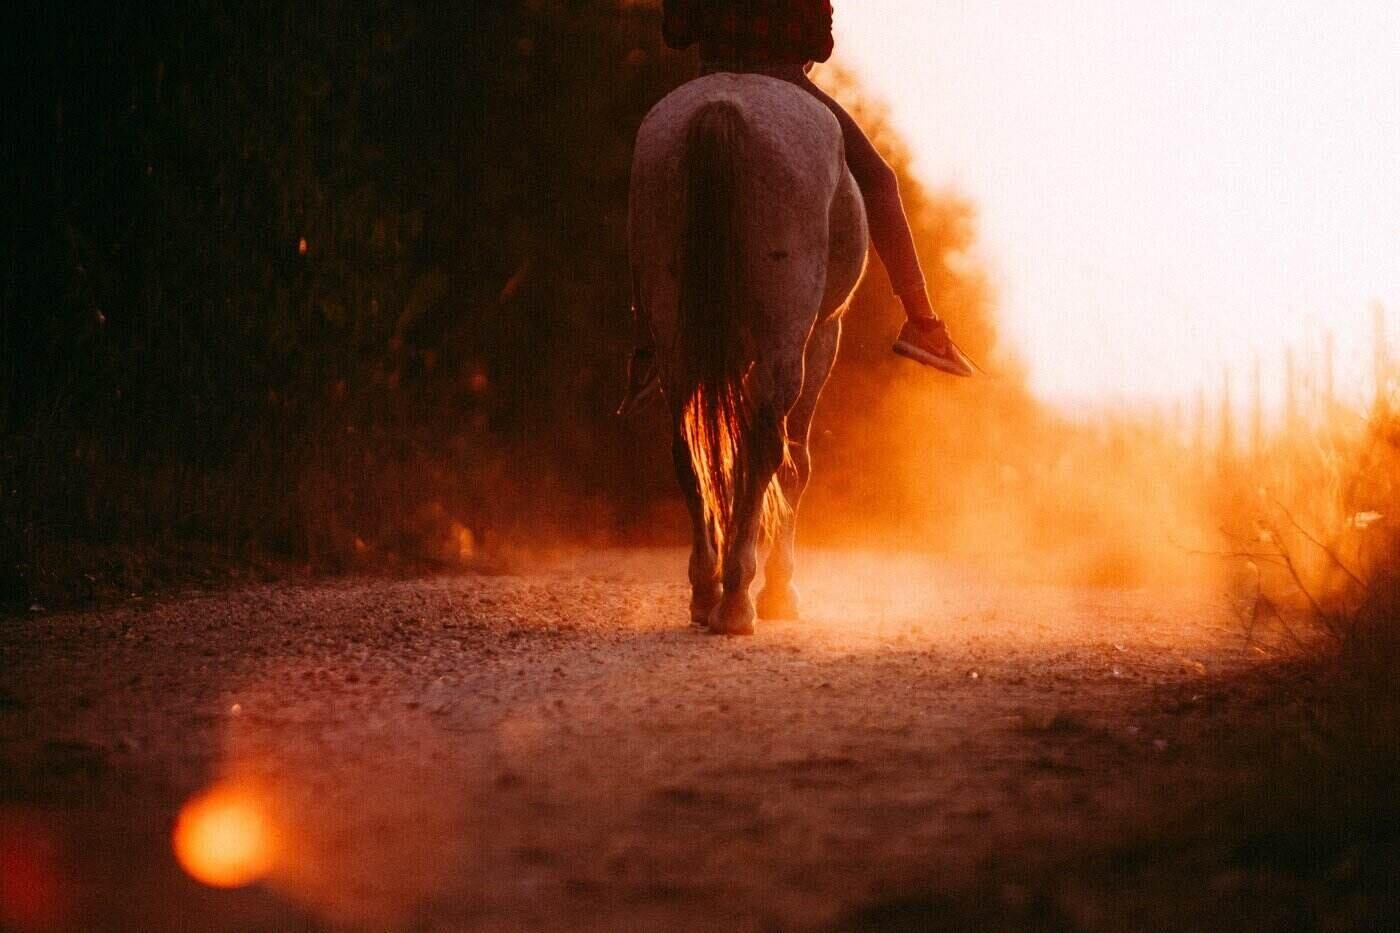 person riding horse at sunset - horses for sale - 7 tips for first-time buyers